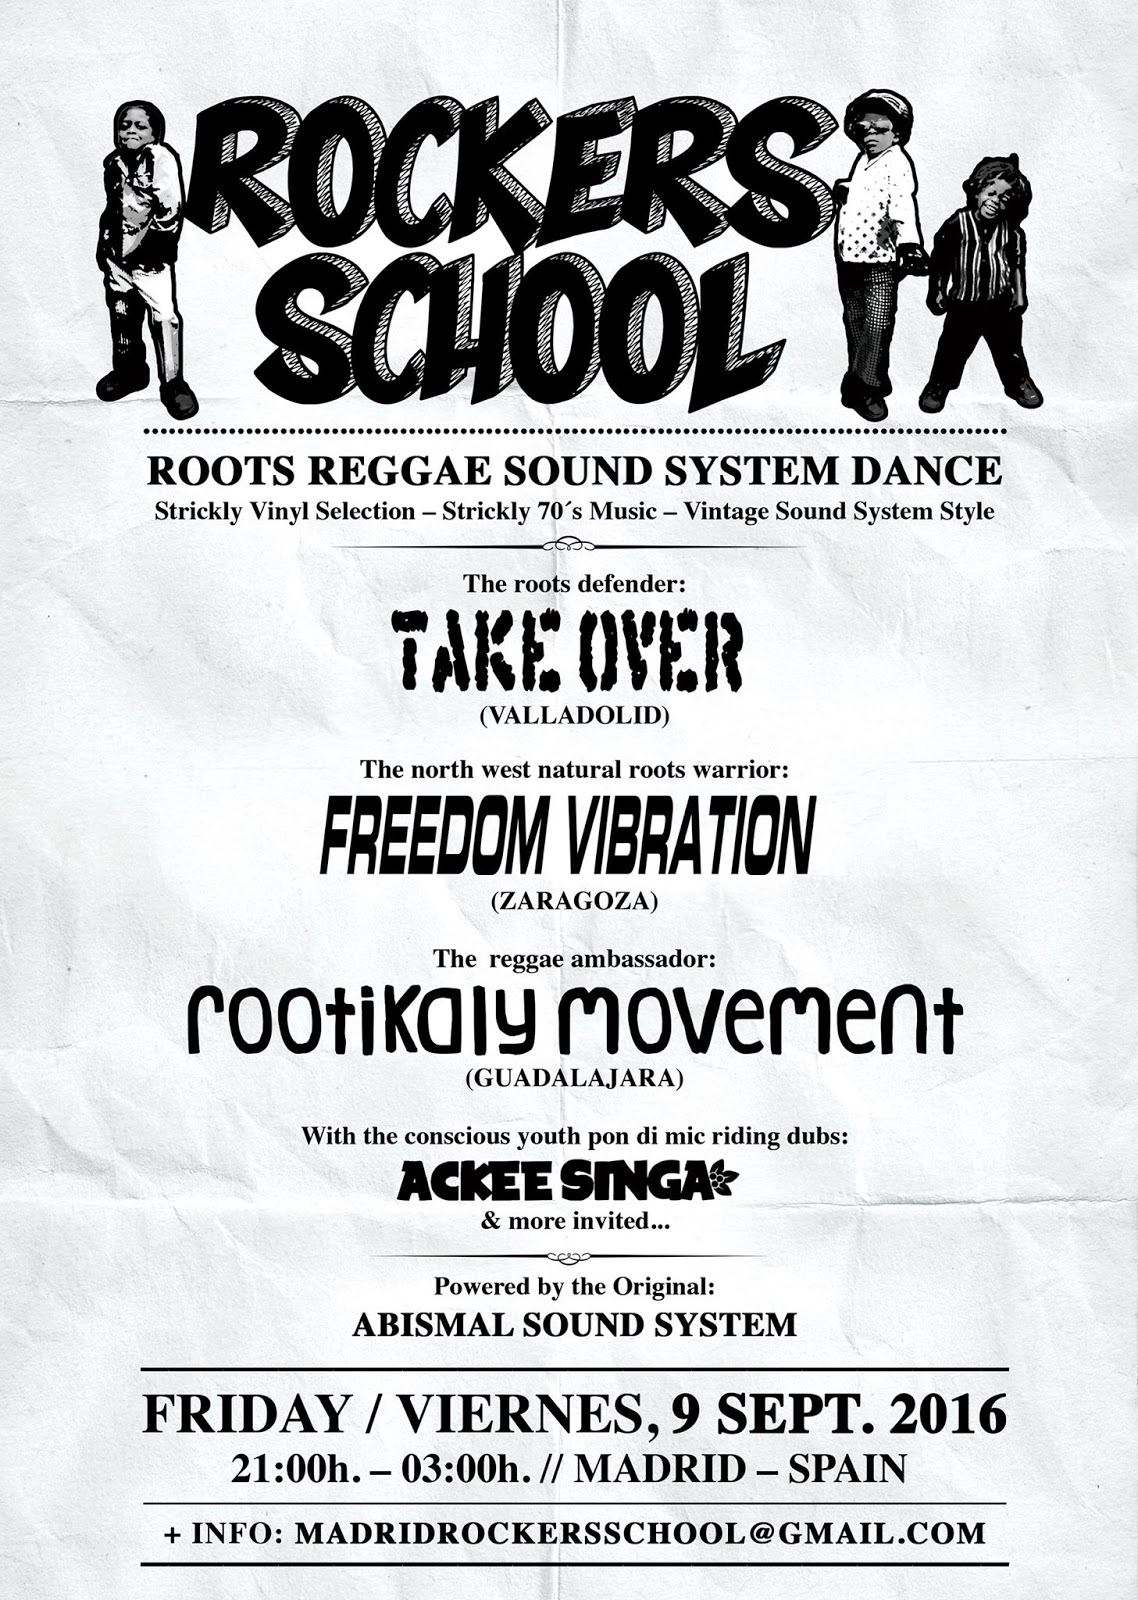 Viernes 9 Septiembre - ROCKERS SCHOOL - TAKE OVER - FREEDOM VIBRATION - ROOTIKALY MOVEMENT - ACKEE SINGA 13918684_10154455040528130_537788131_o